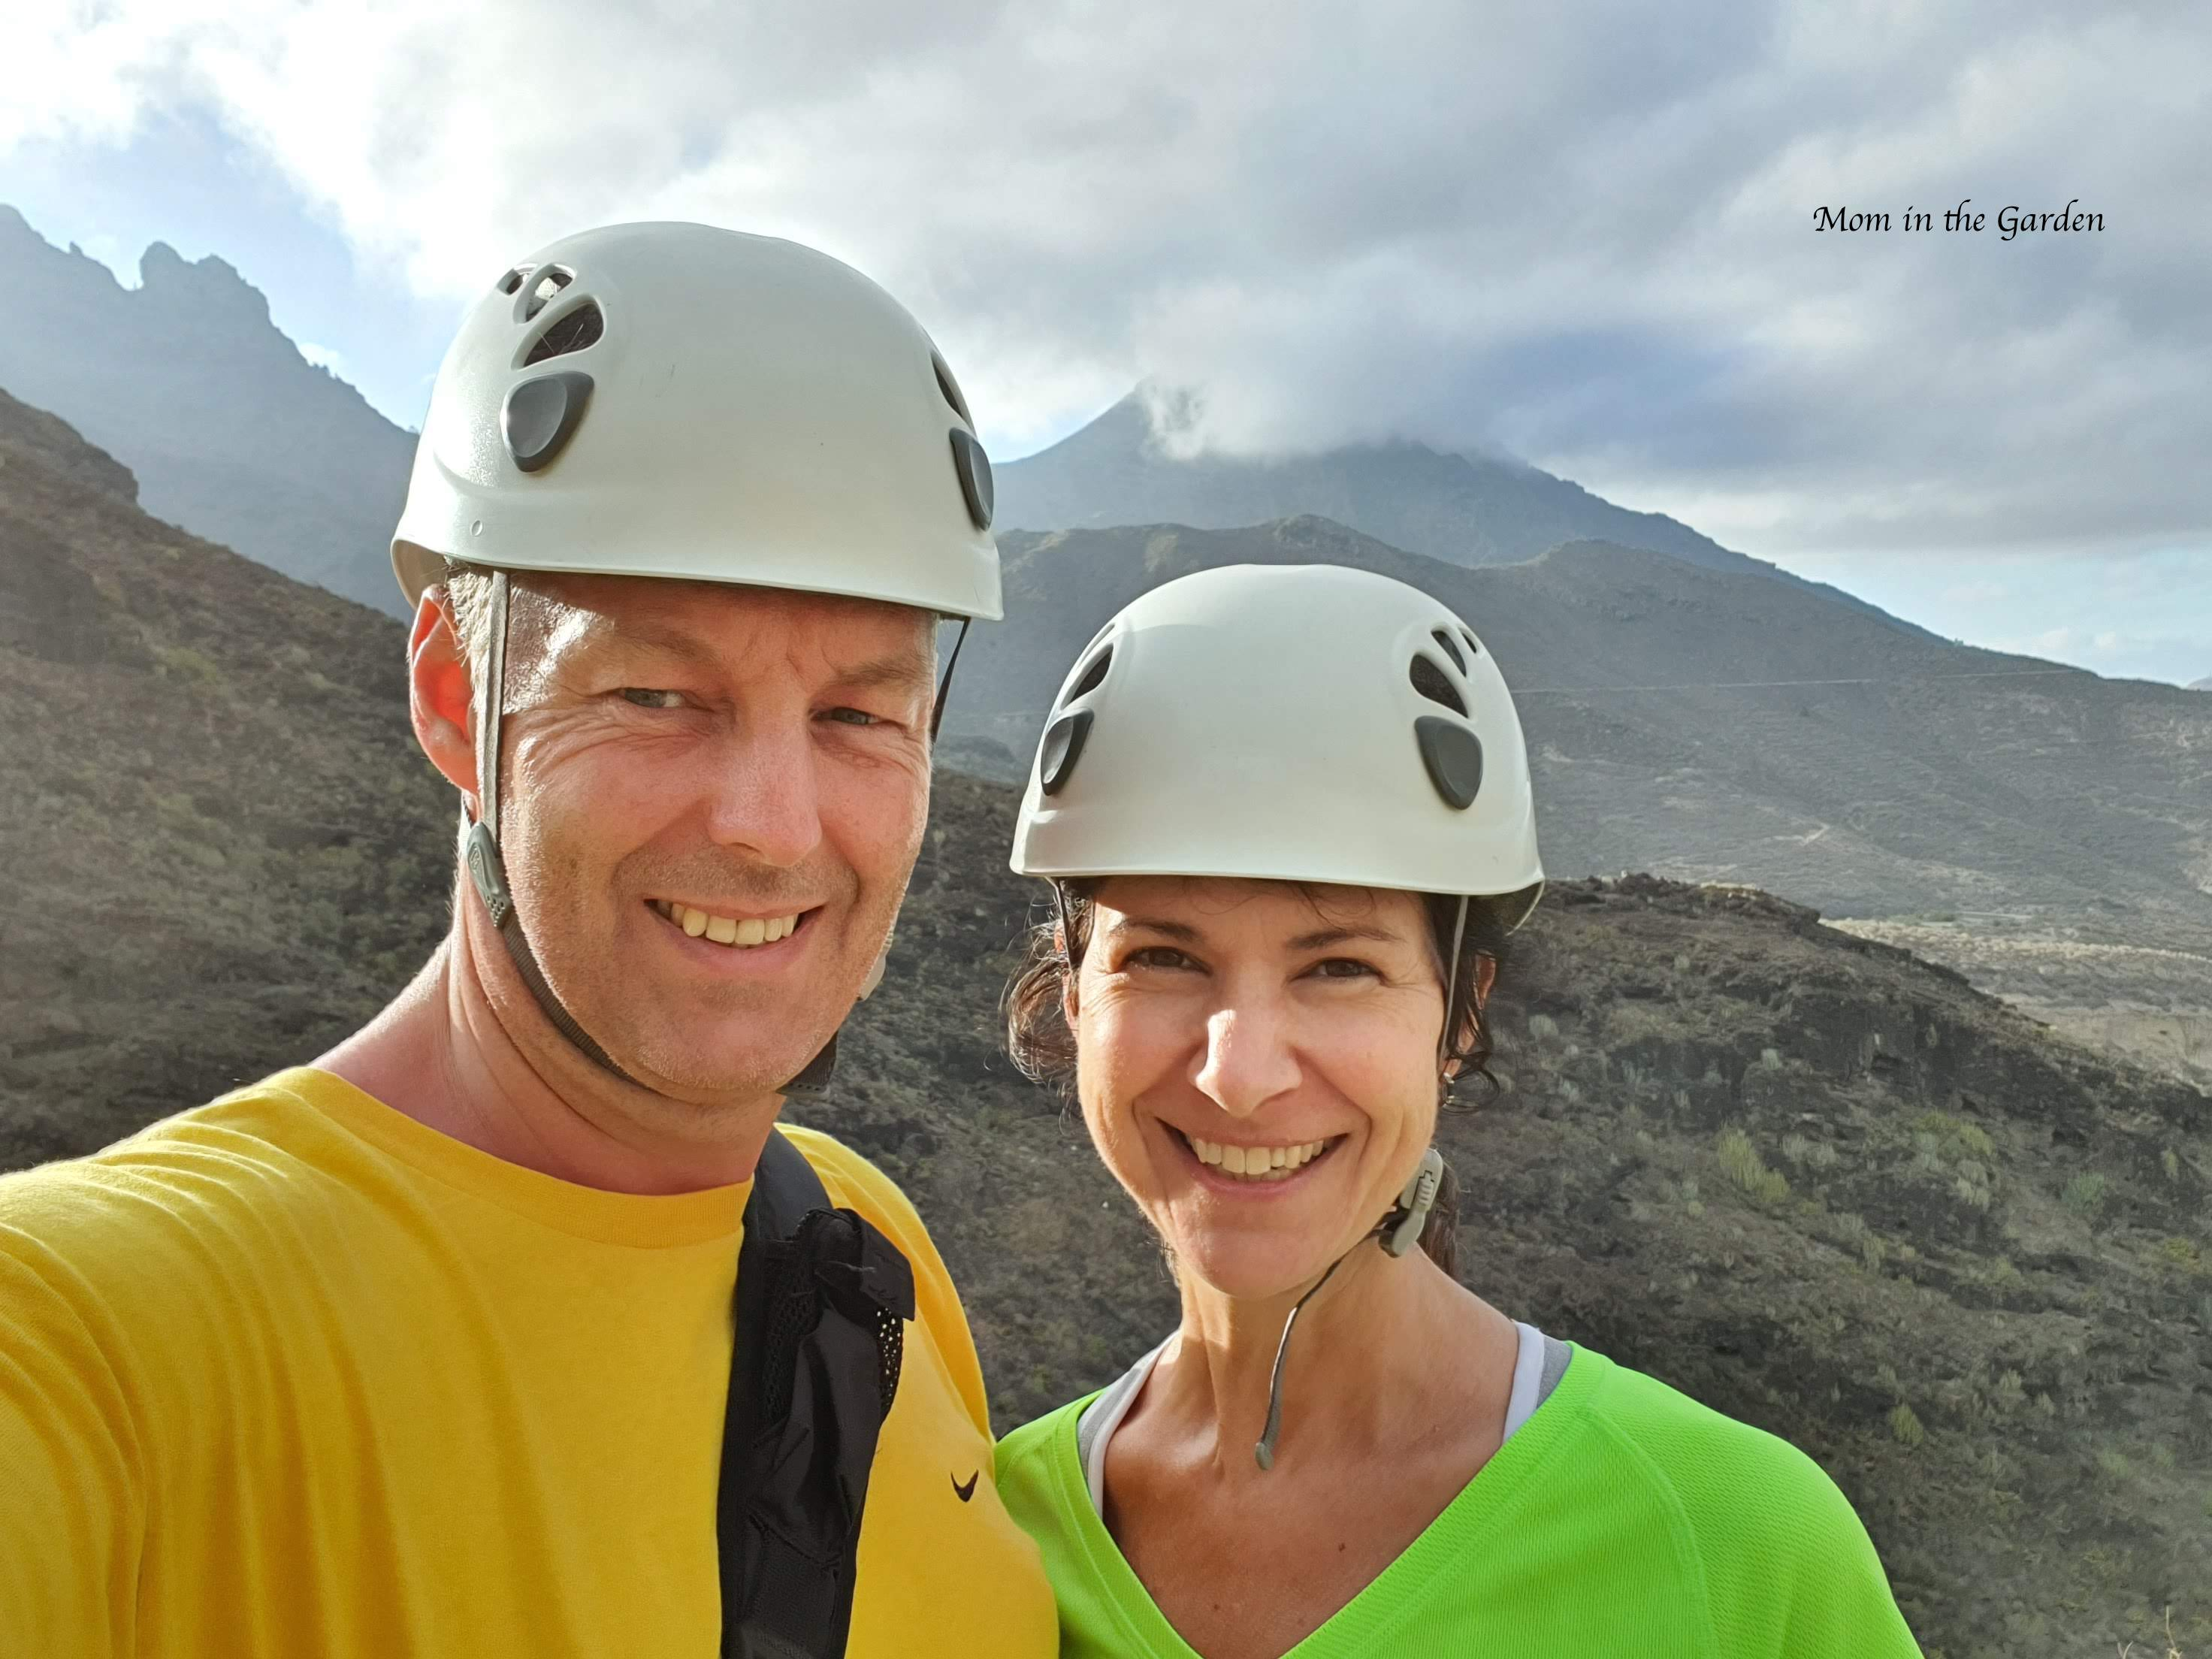 Dana and Páraic at the start of Barranco del Infierno in Adeje, Tenerife